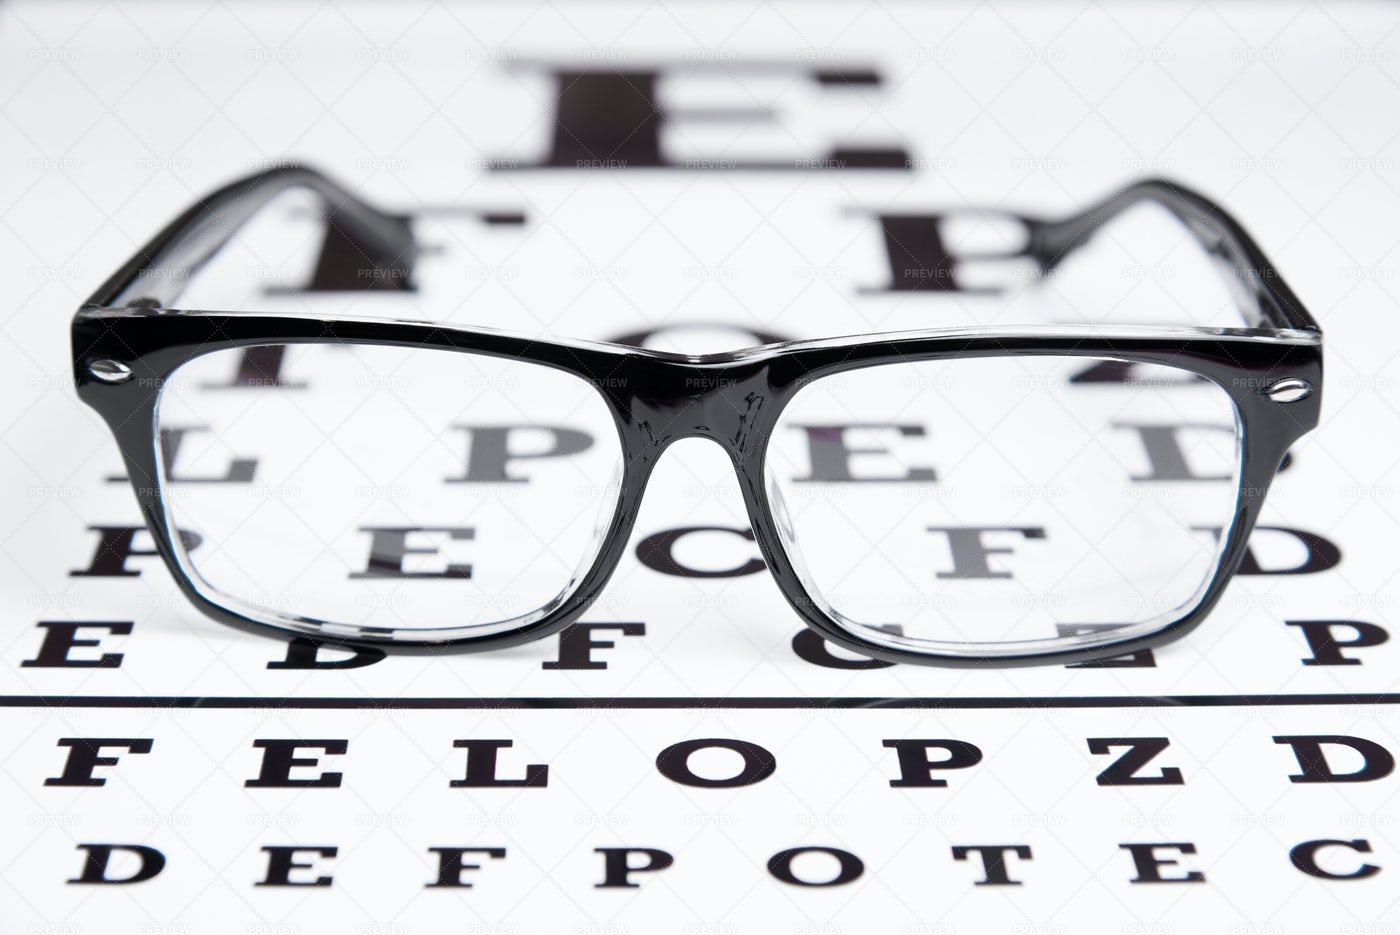 Glasses On Vision Test Chart: Stock Photos